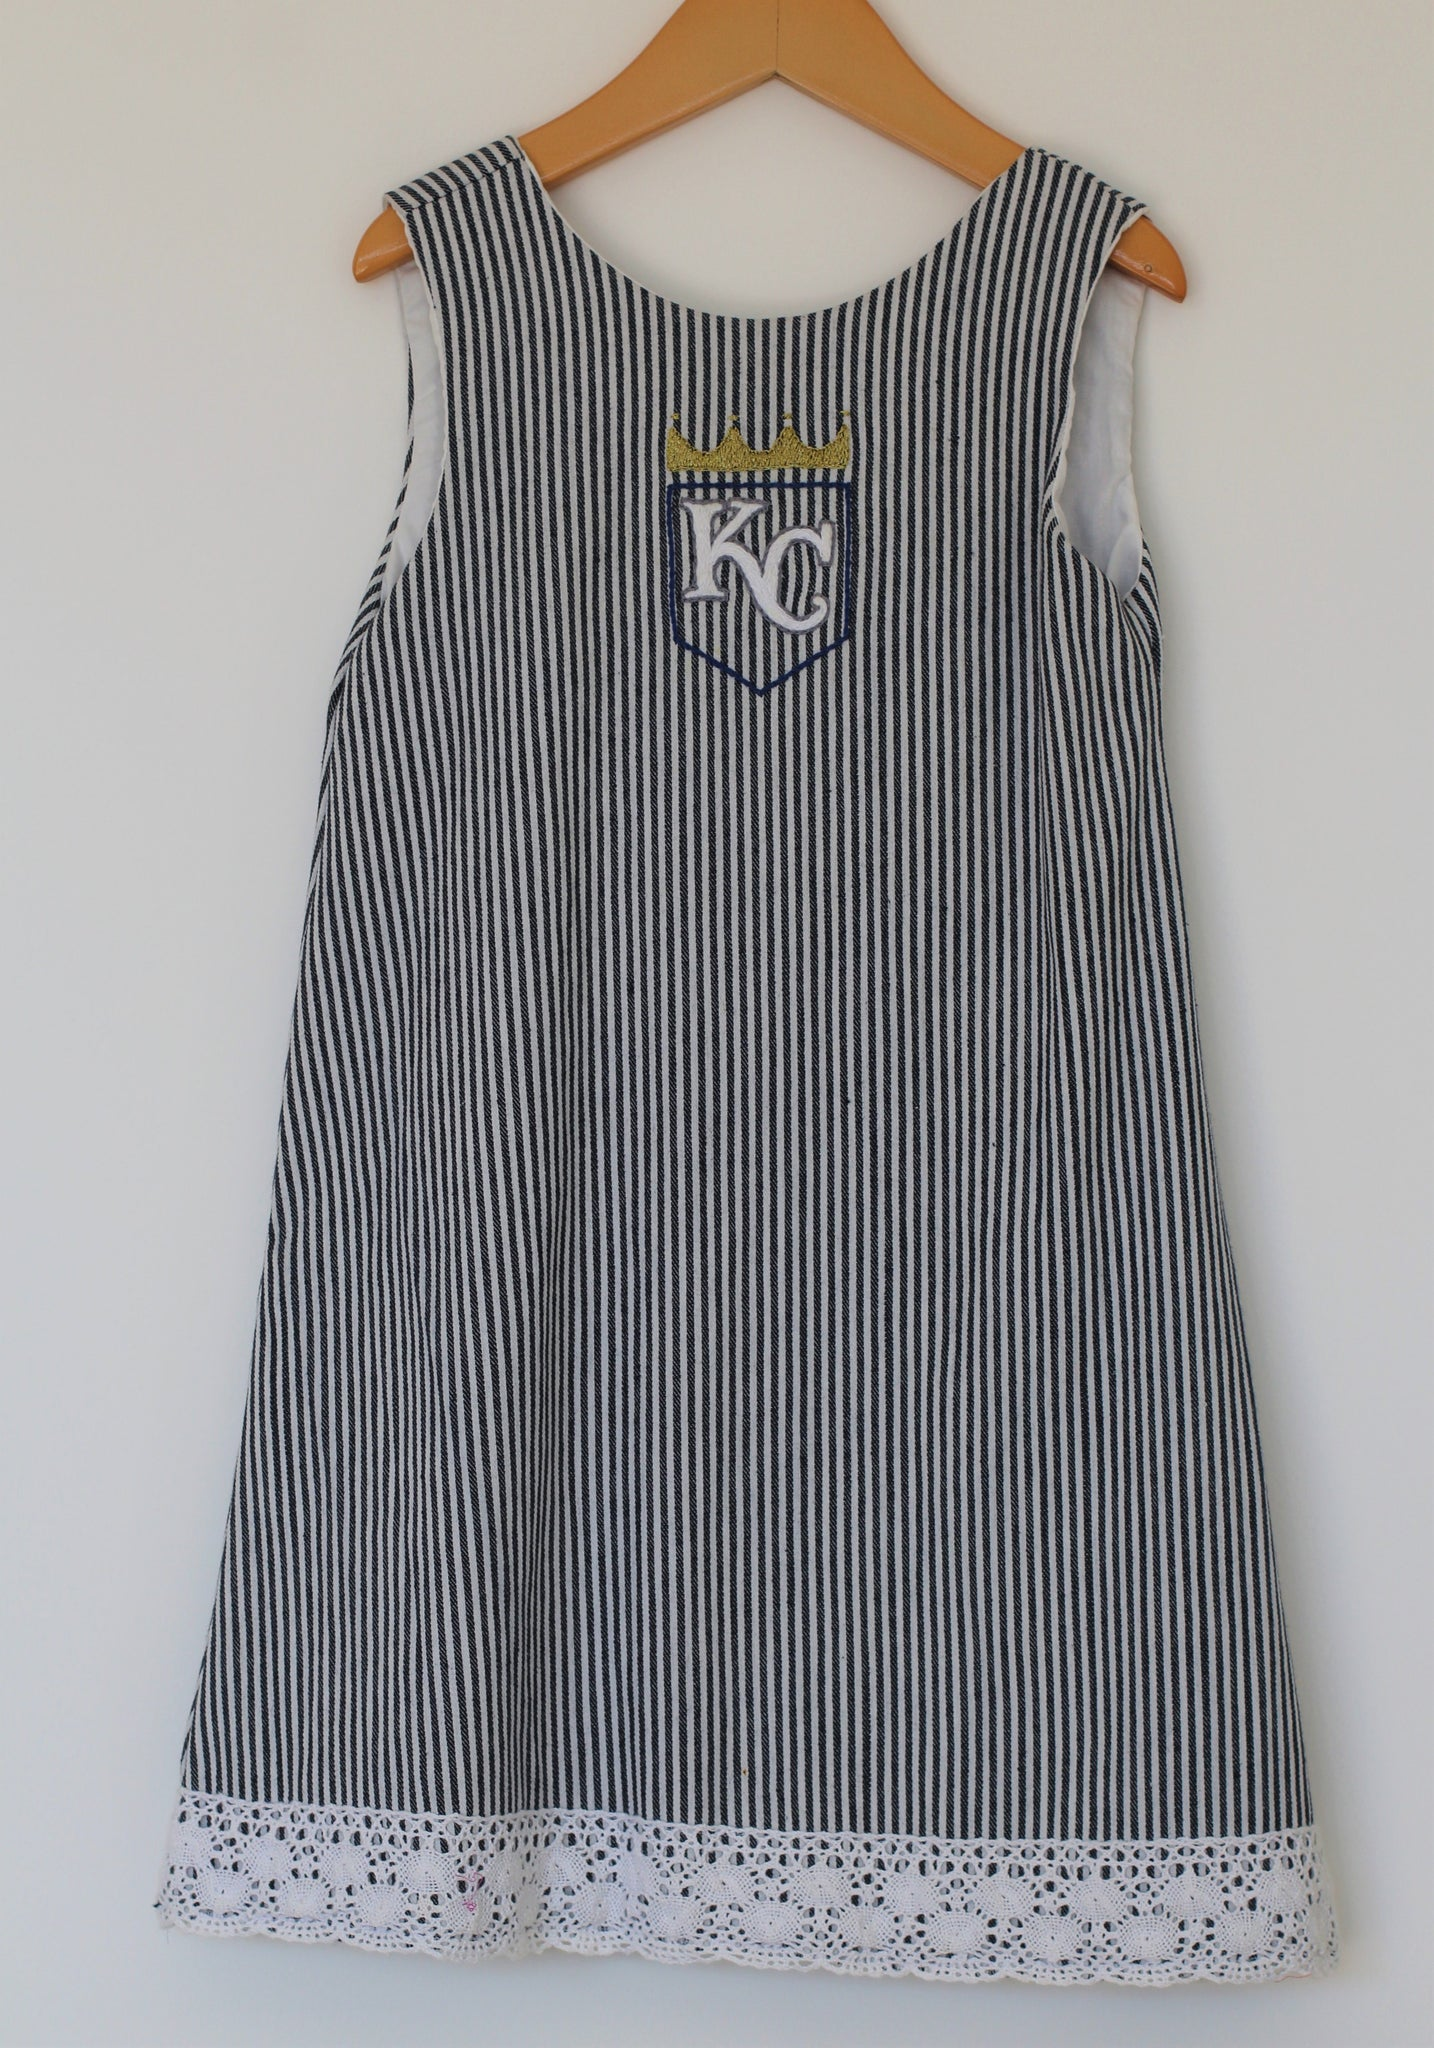 Ballpark Beauties - Royals Dress w/ Red Bow Back - Size 6 - Year End Sale - RTS